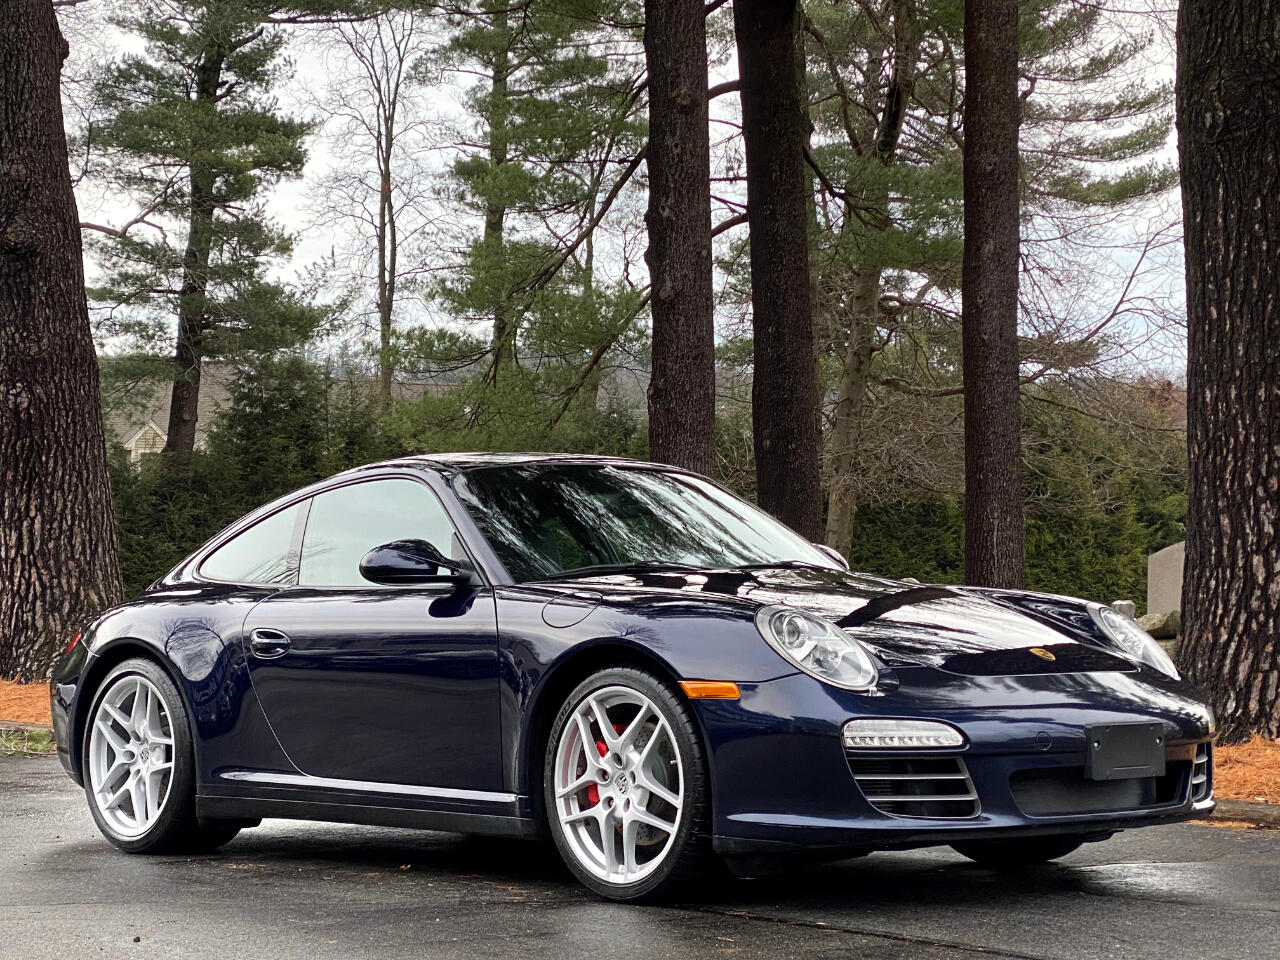 2009 Porsche 911 Carrera S Coupe